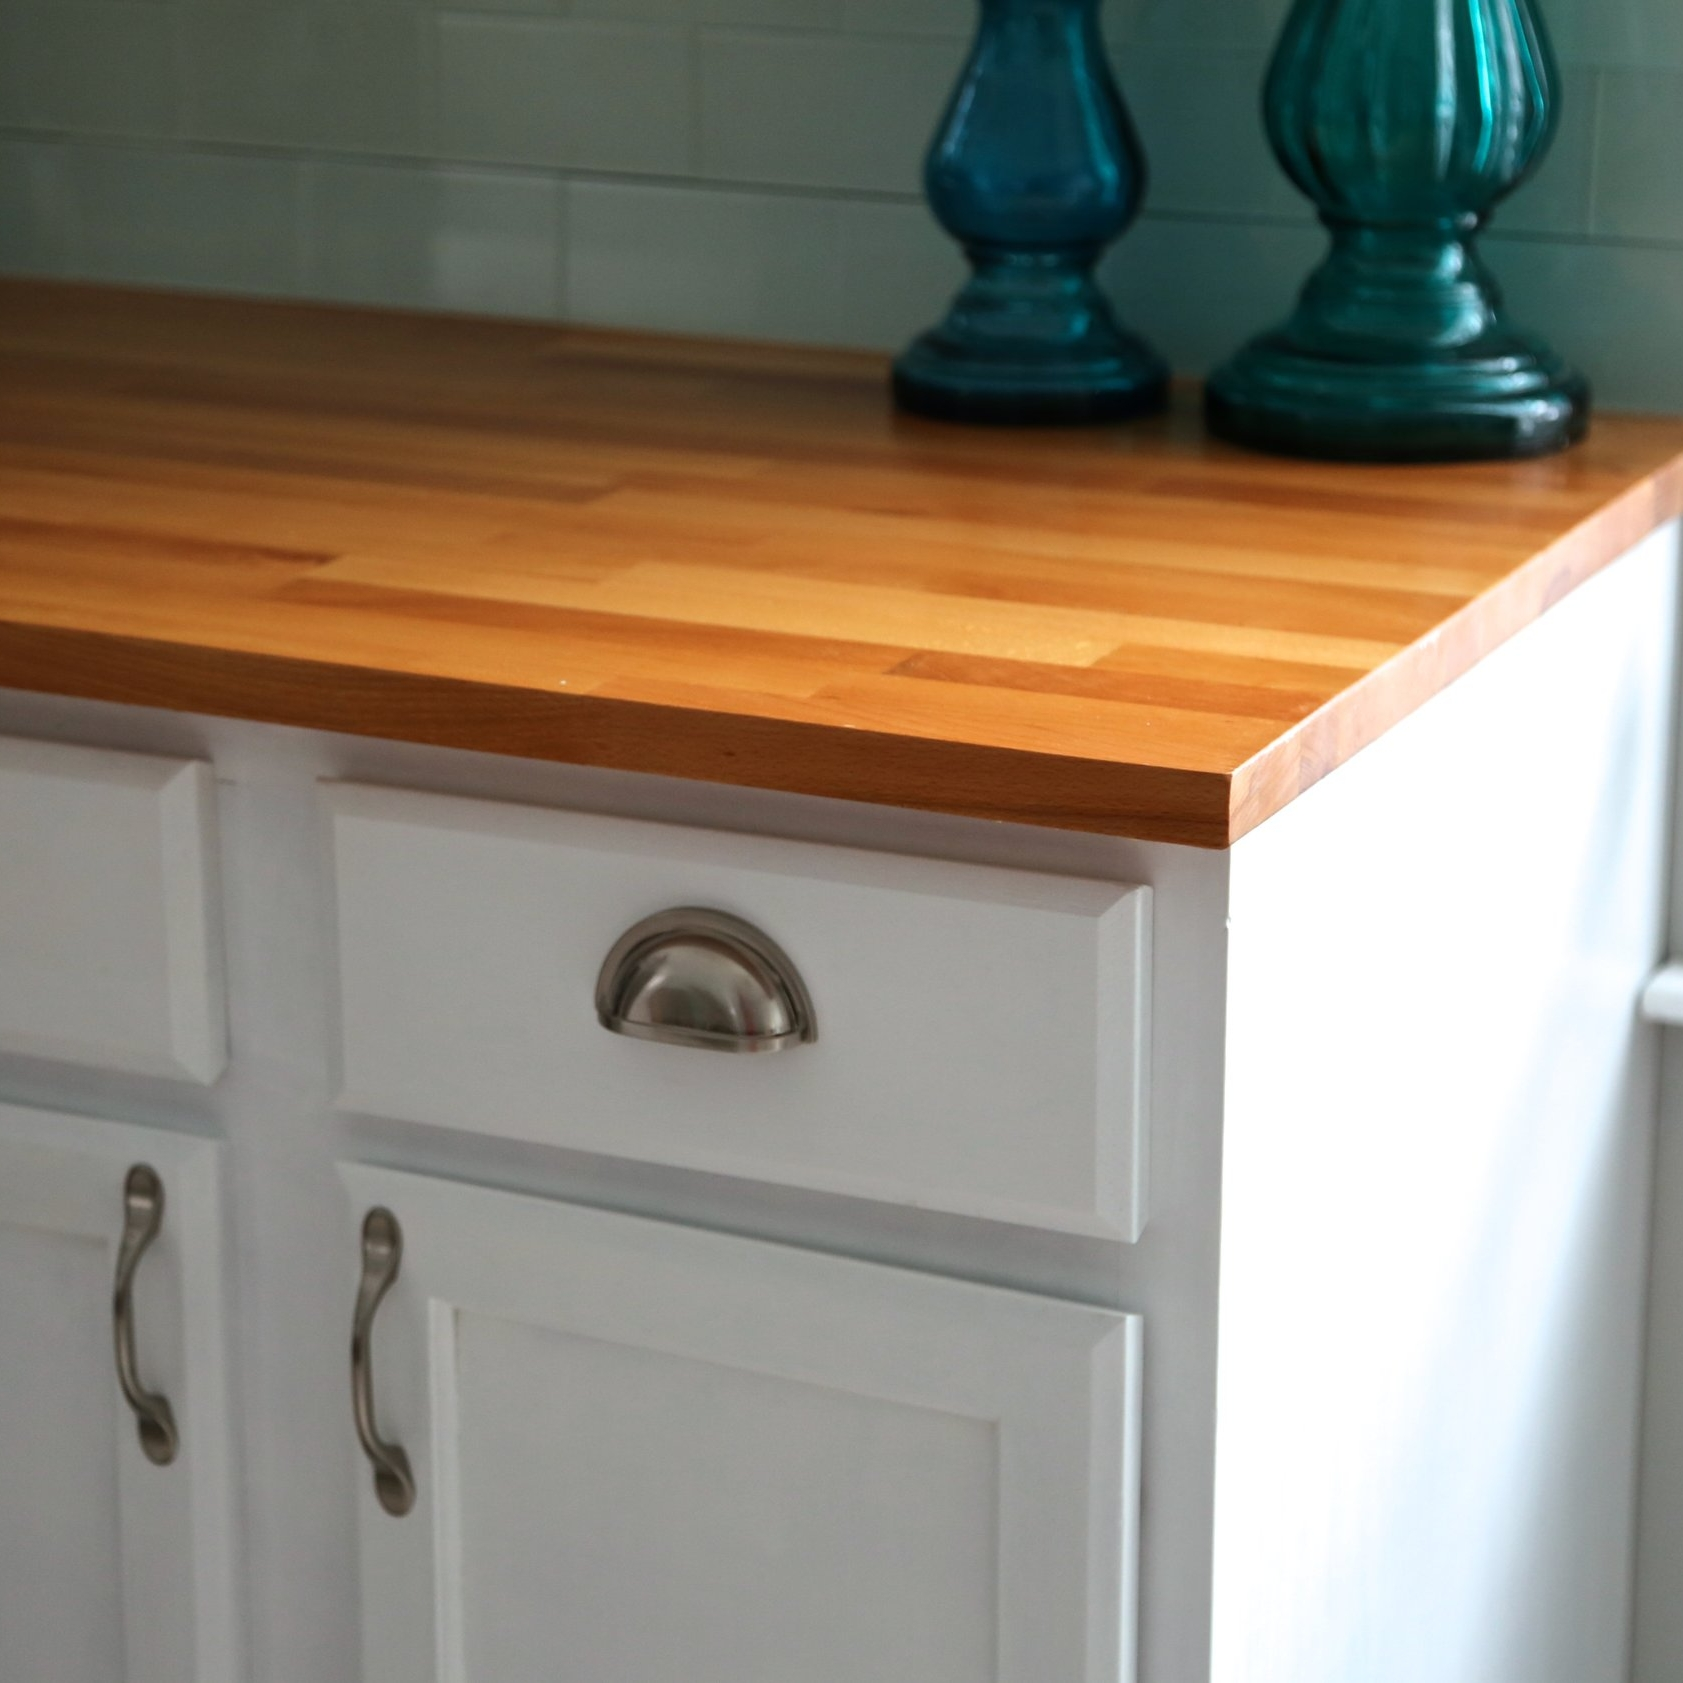 How To Install Ikea Butcher Block Countertops Weekend Craft